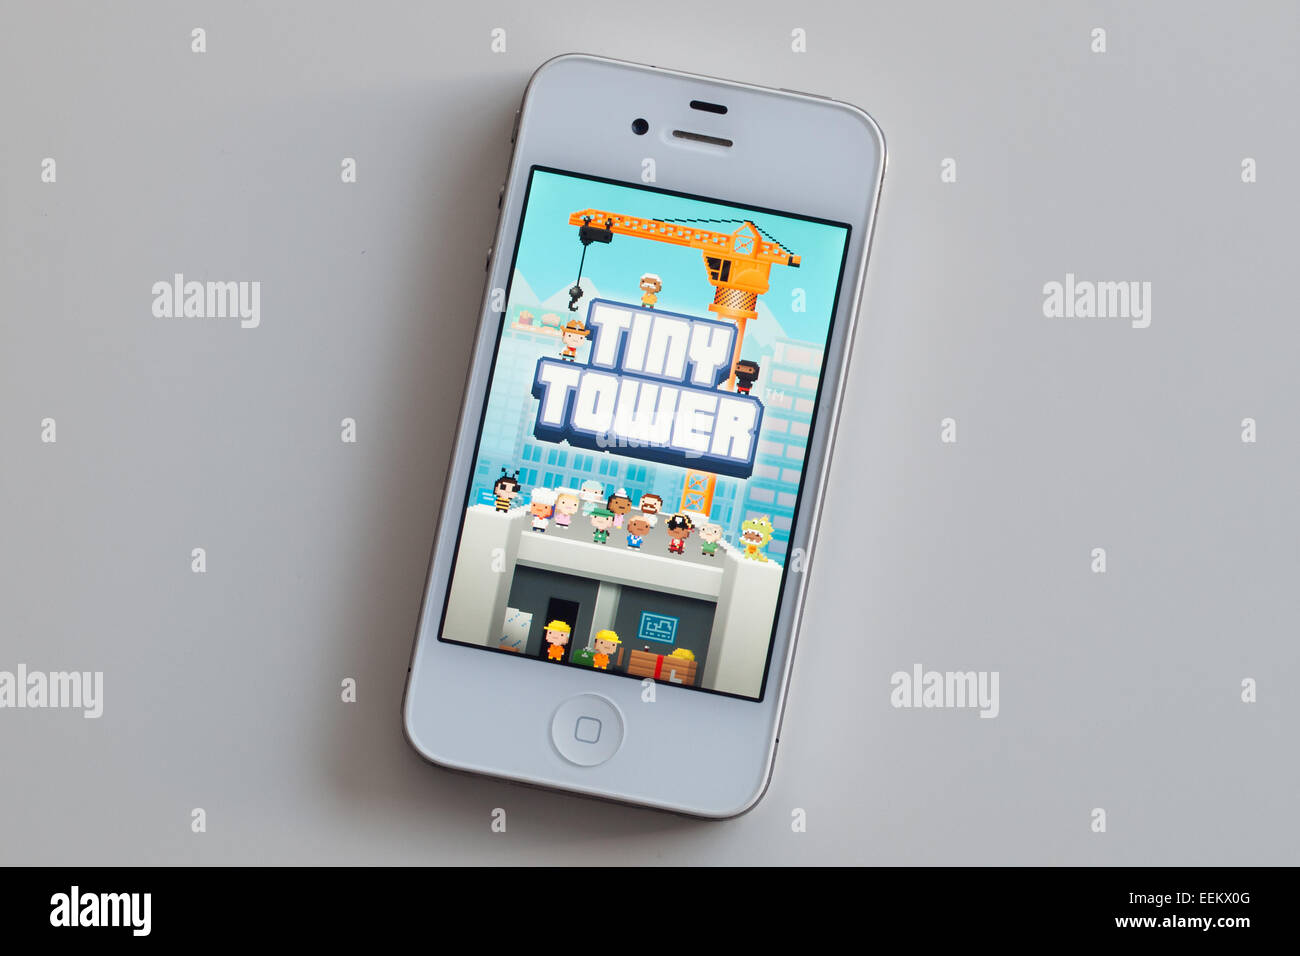 The homescreen of the Tiny Tower game, which was developed by NimbleBit,  for iOS on an Apple iPhone 4. - Stock Image